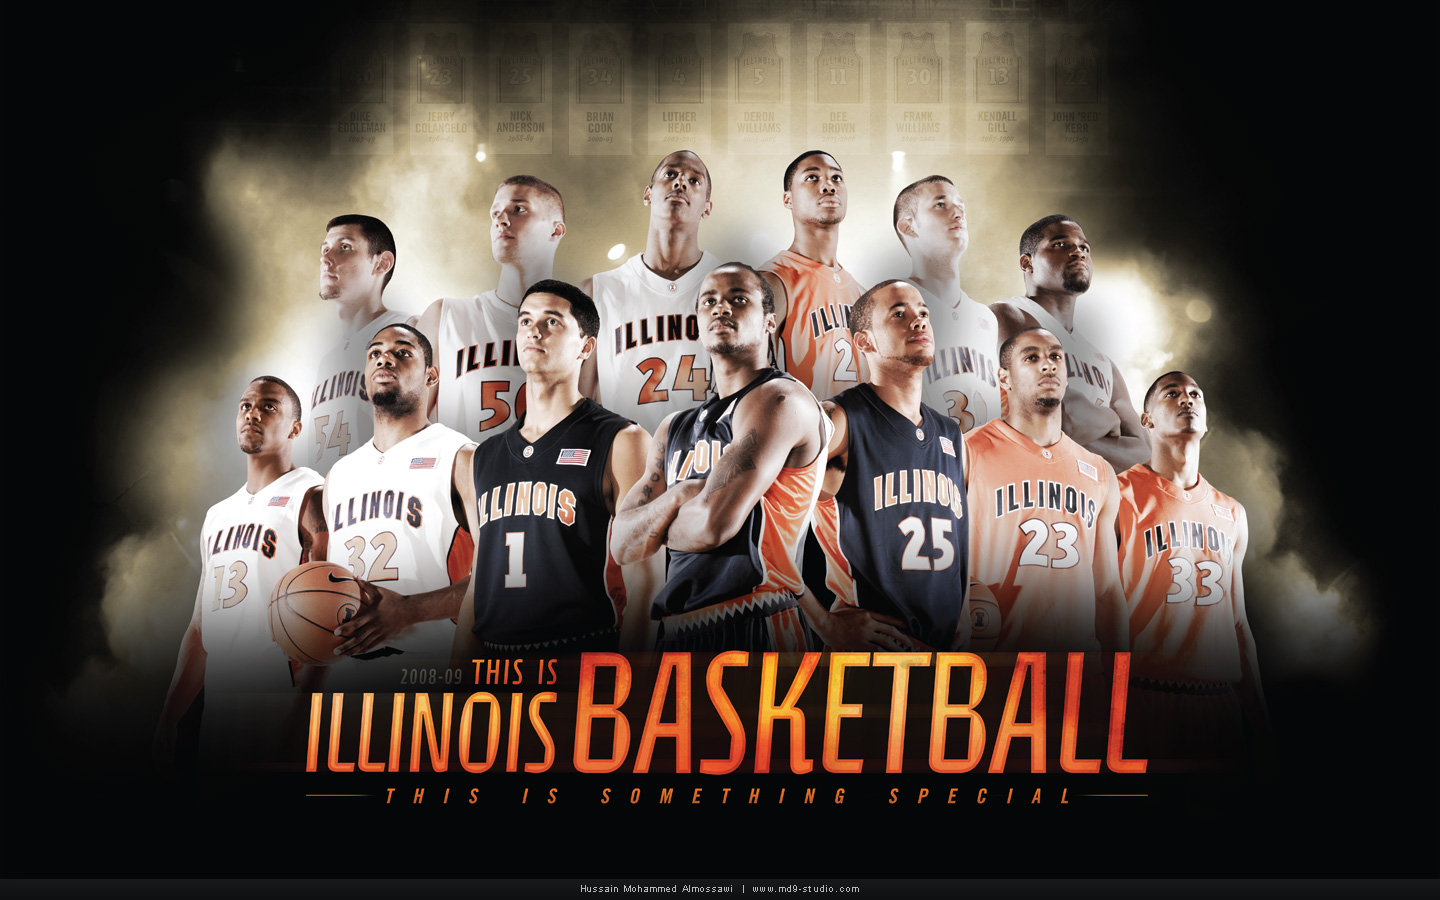 Illinois Basketball Poster by mossawi